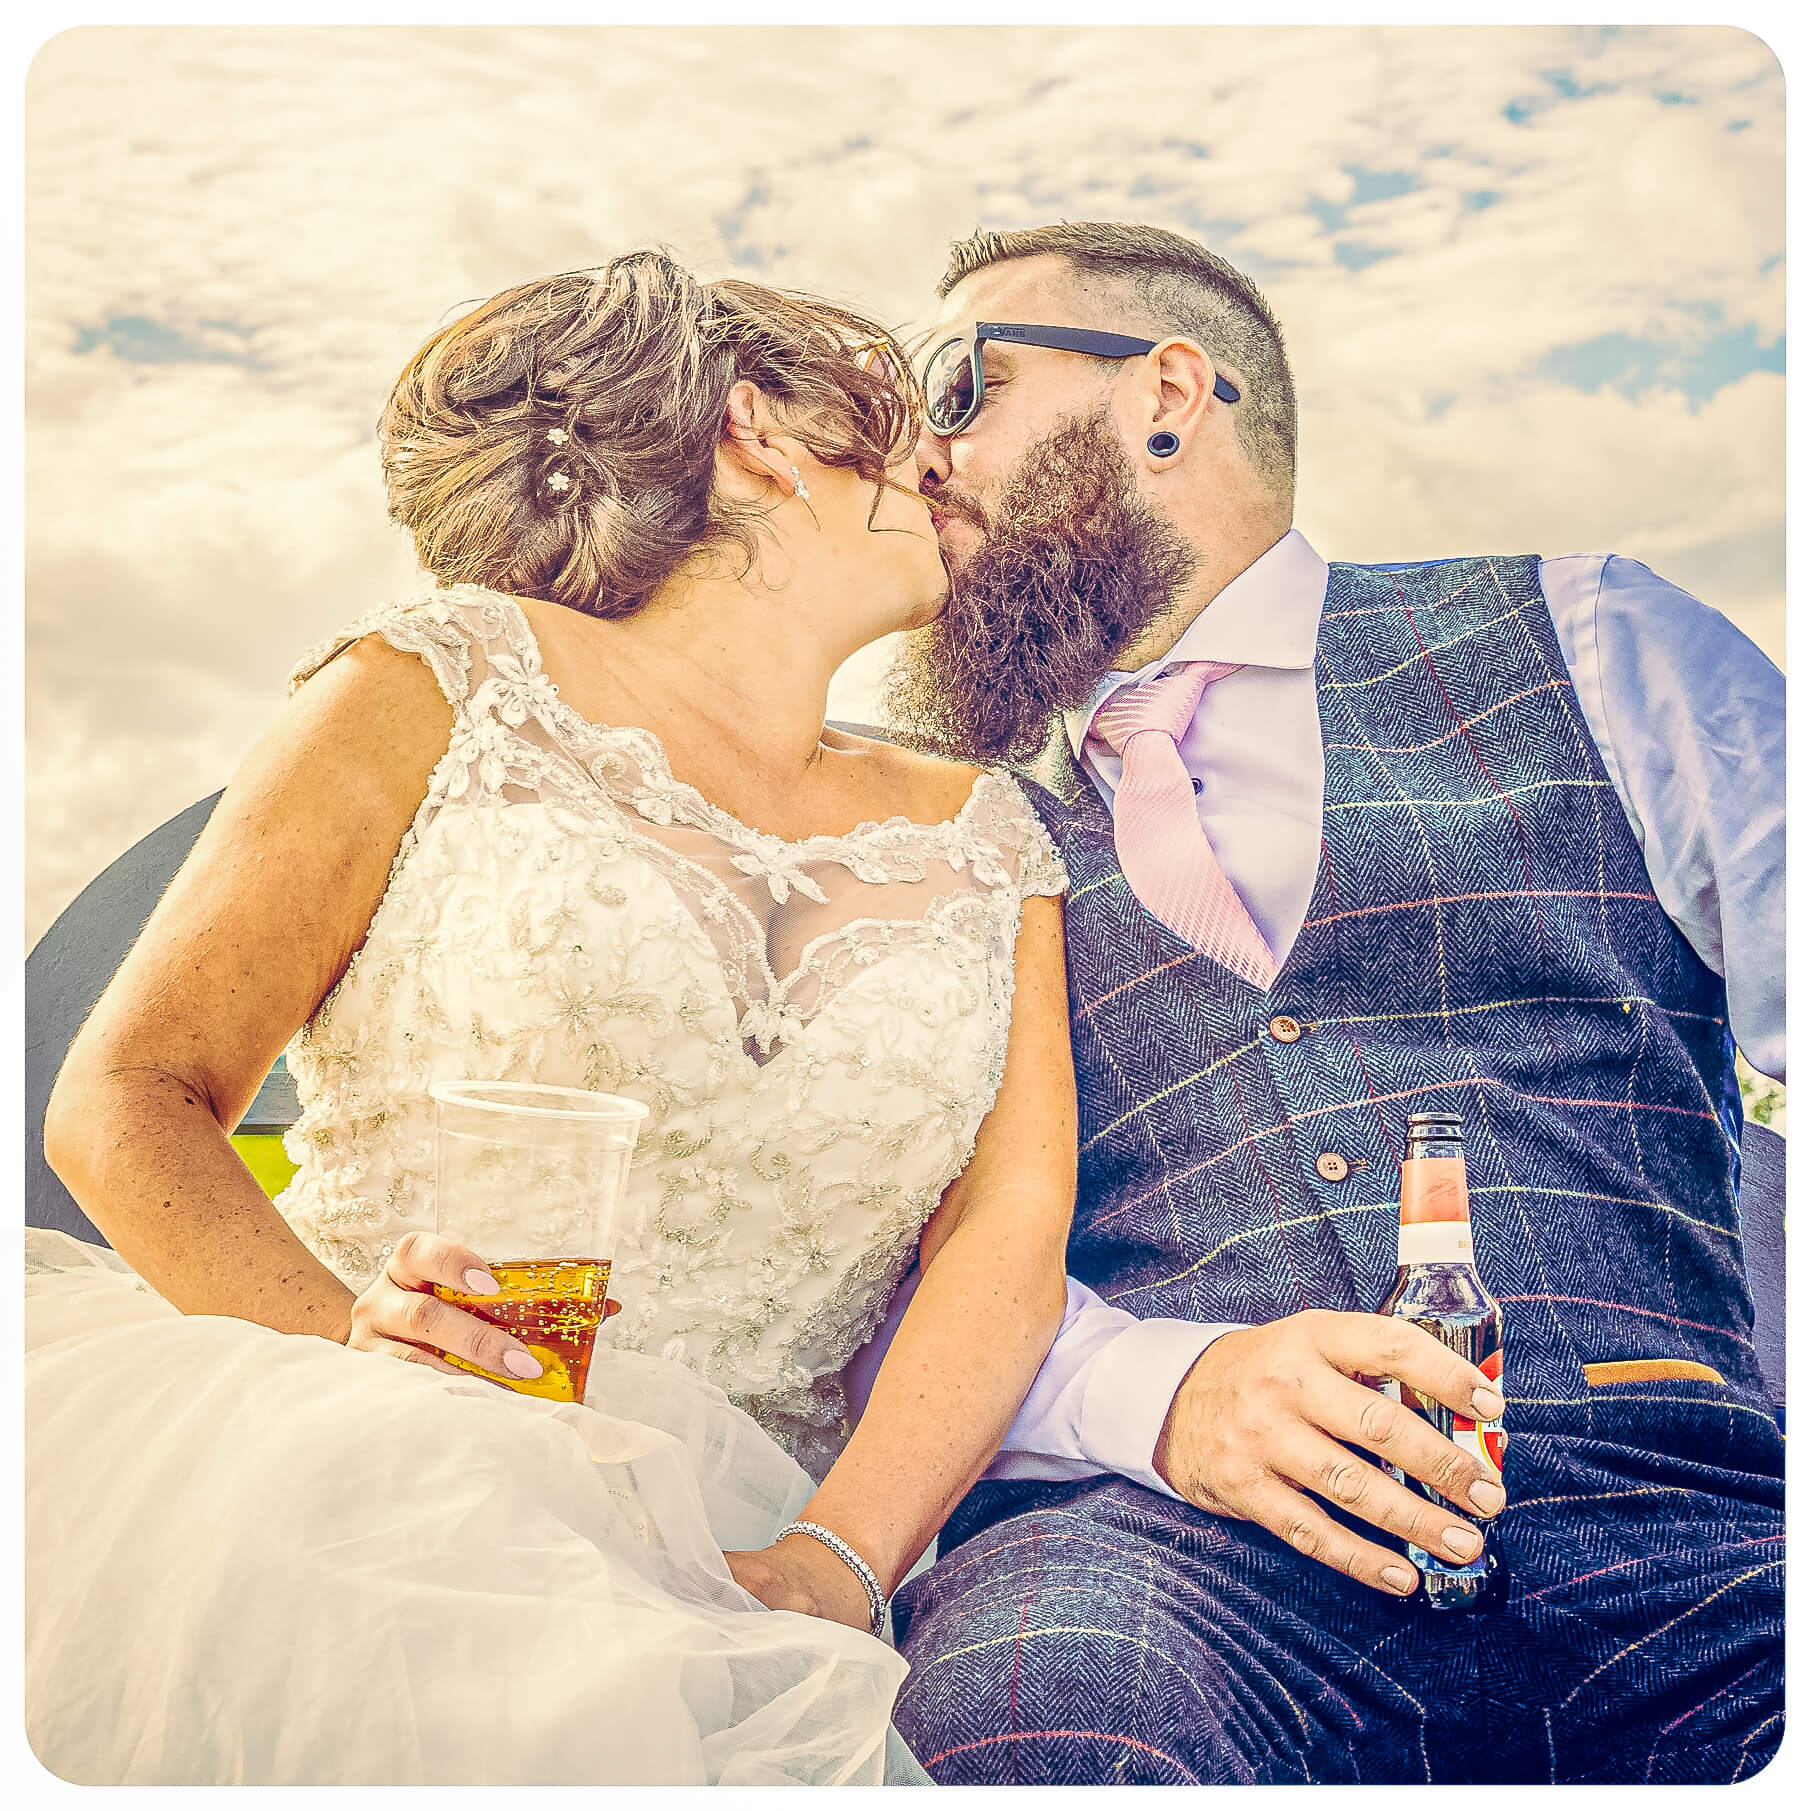 The Bride & Groom share a kiss whilst taking a break during the formal photographs. Both have the obligatory drink in their hand.